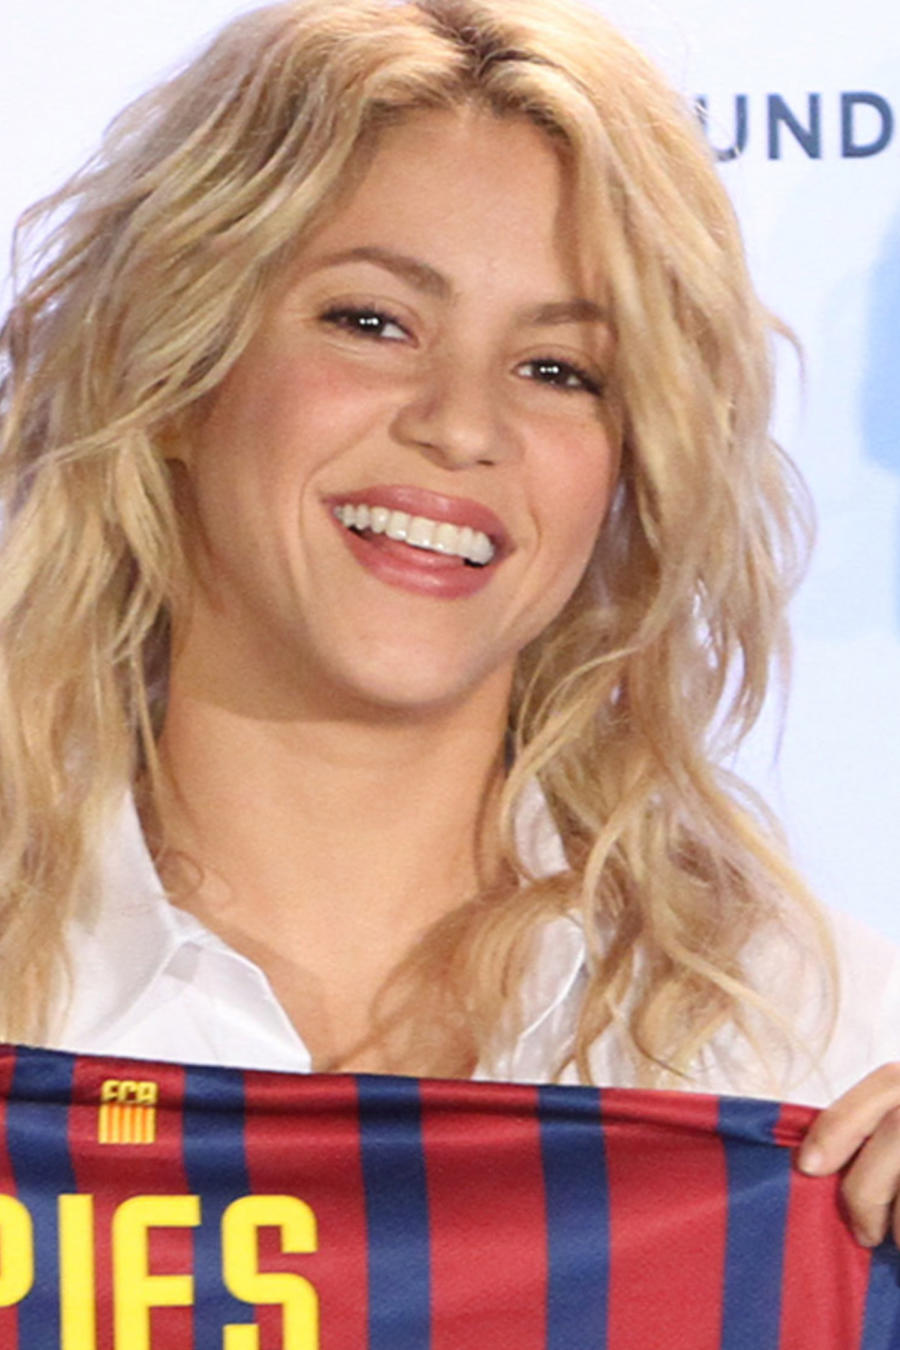 Shakira Attends Pies Descalzos Press Conference